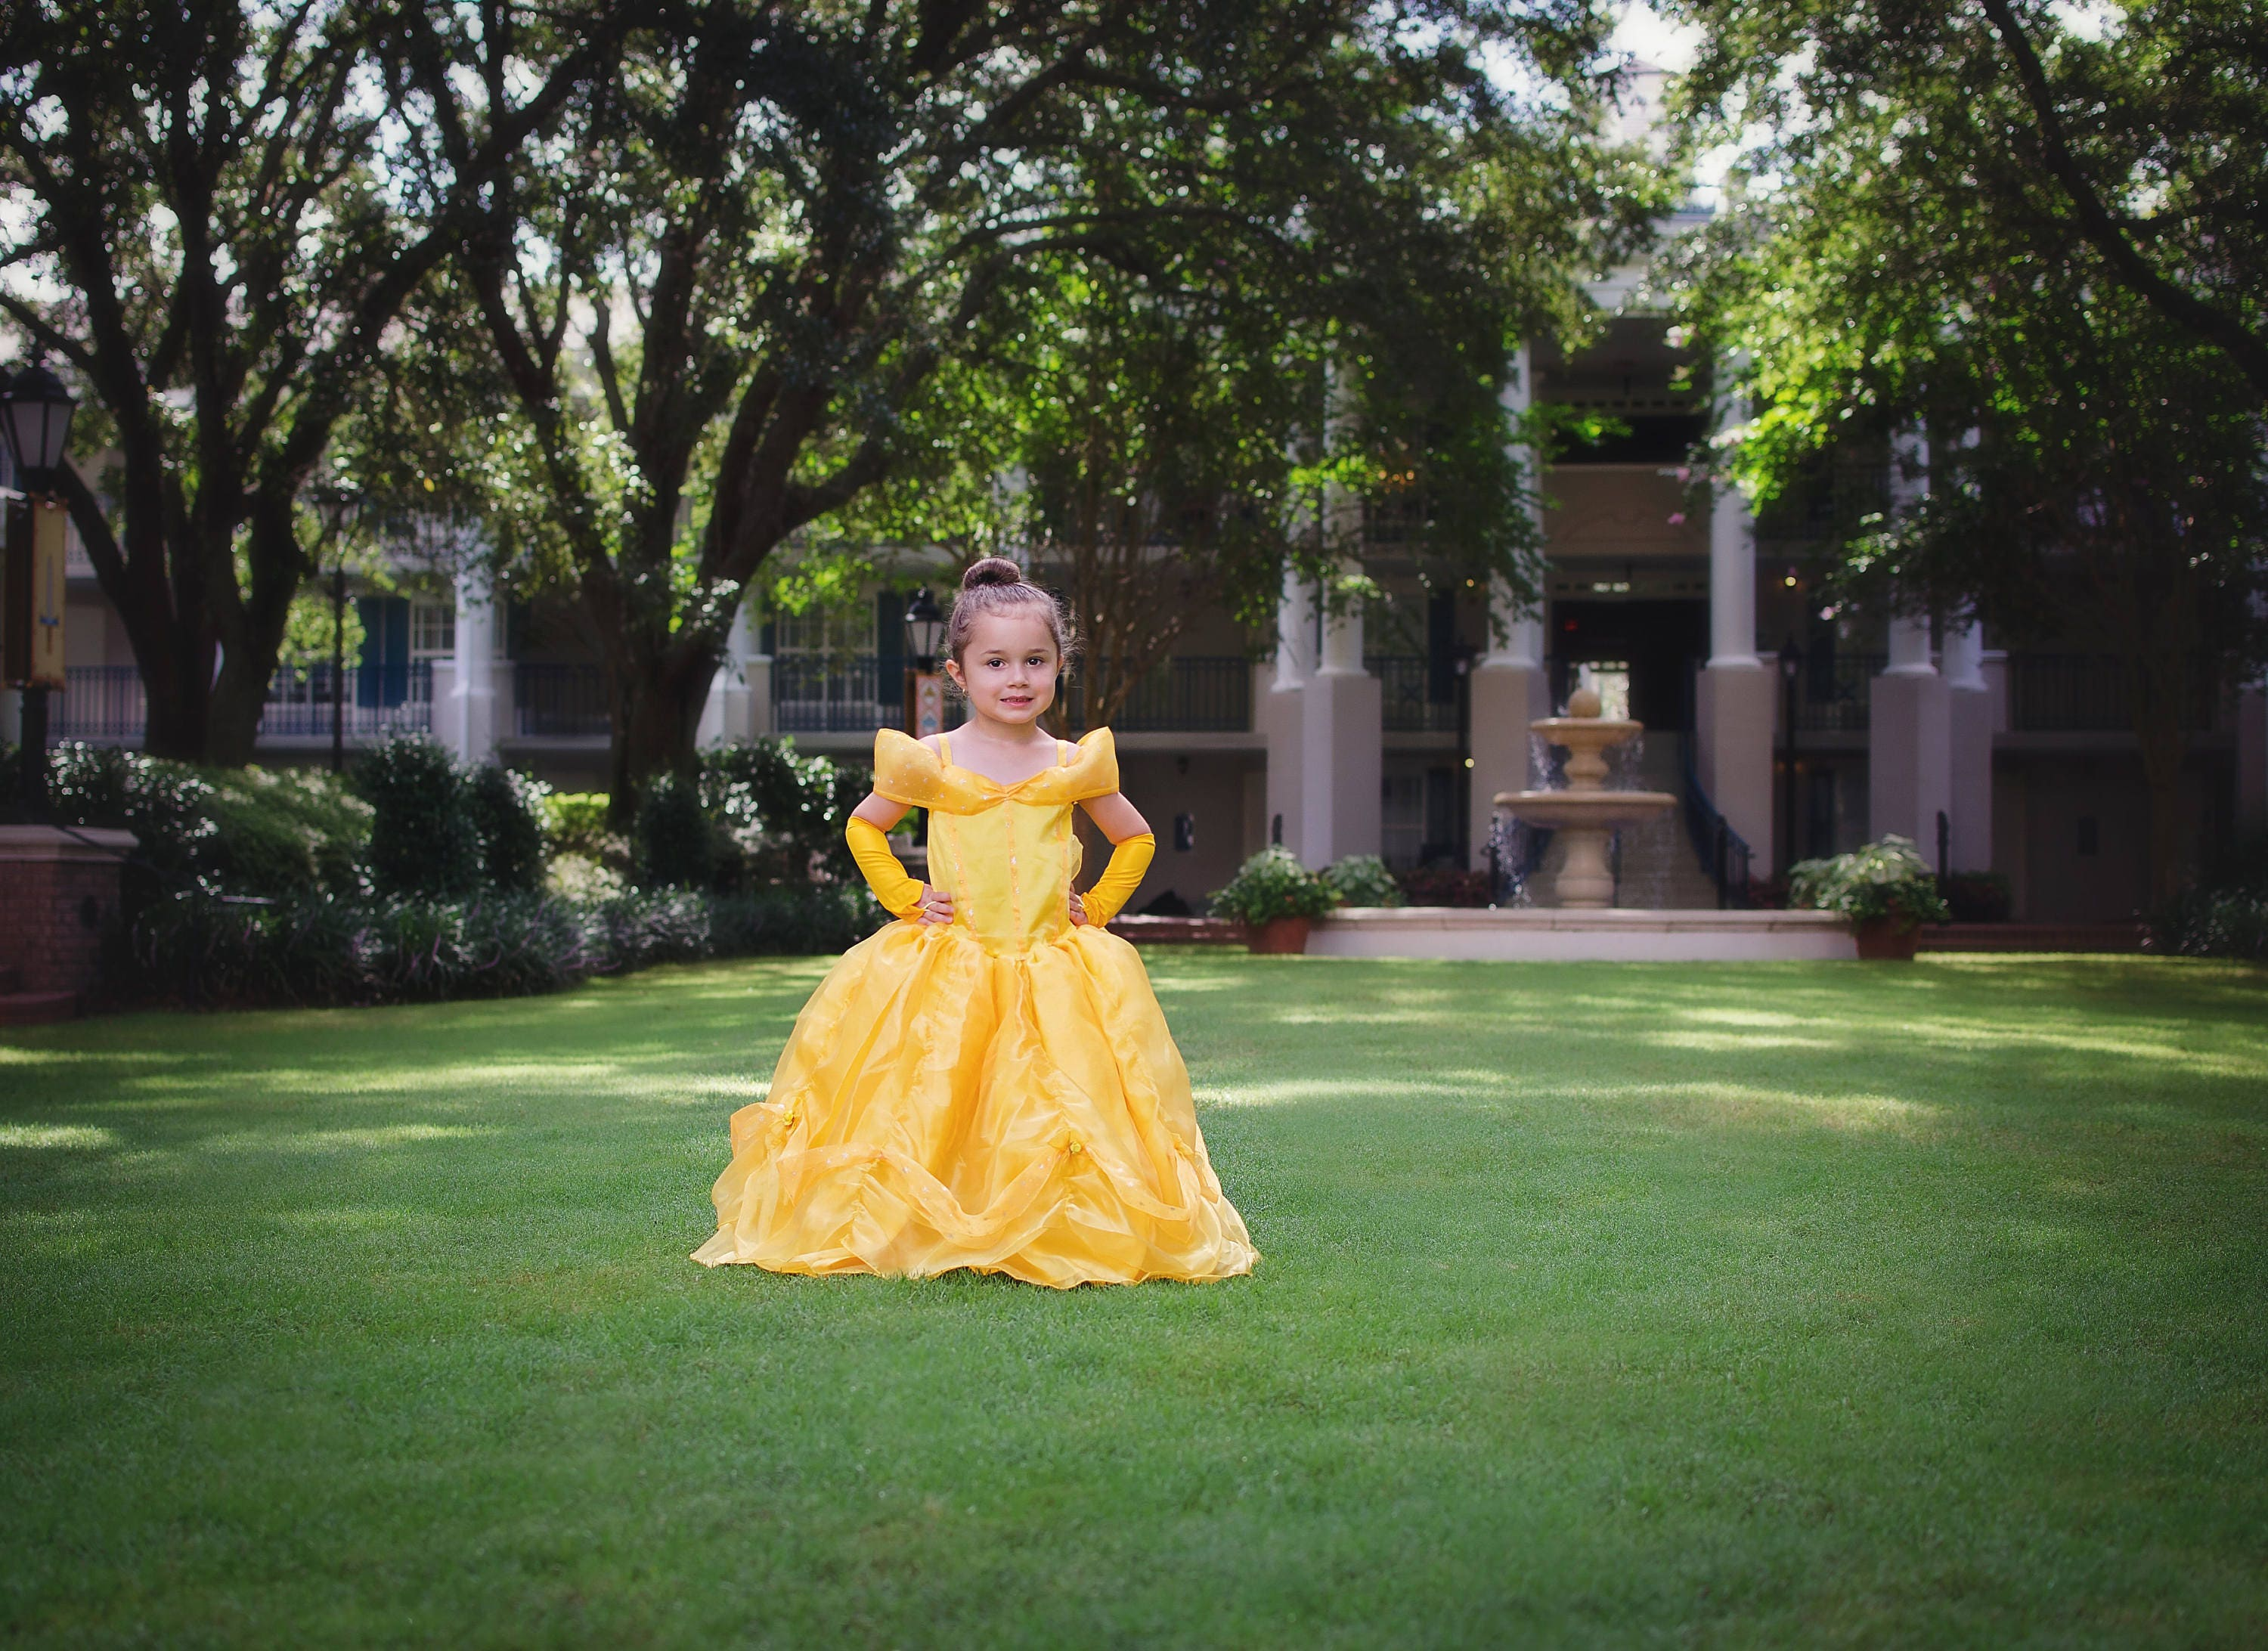 Belle Dress Disney Princess Beauty And The Beast Inspired Costume Yellow